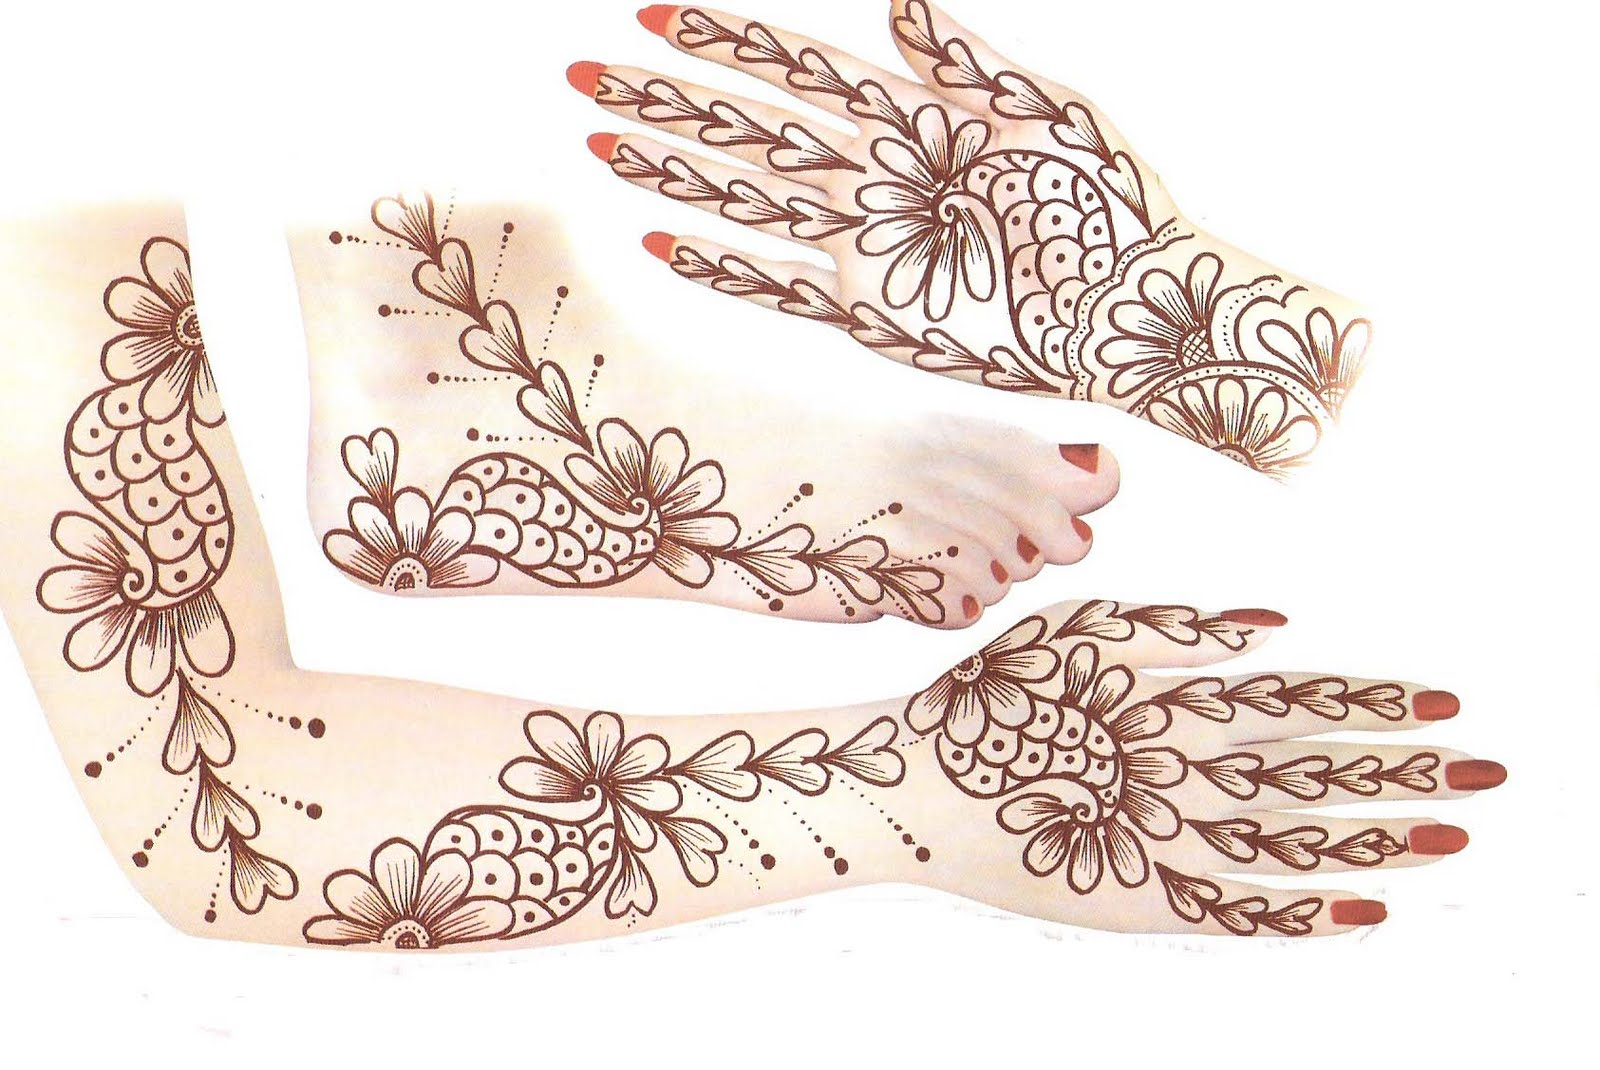 Mehndi Patterns On Paper For Kids : Arabian mehndi designs design on paper